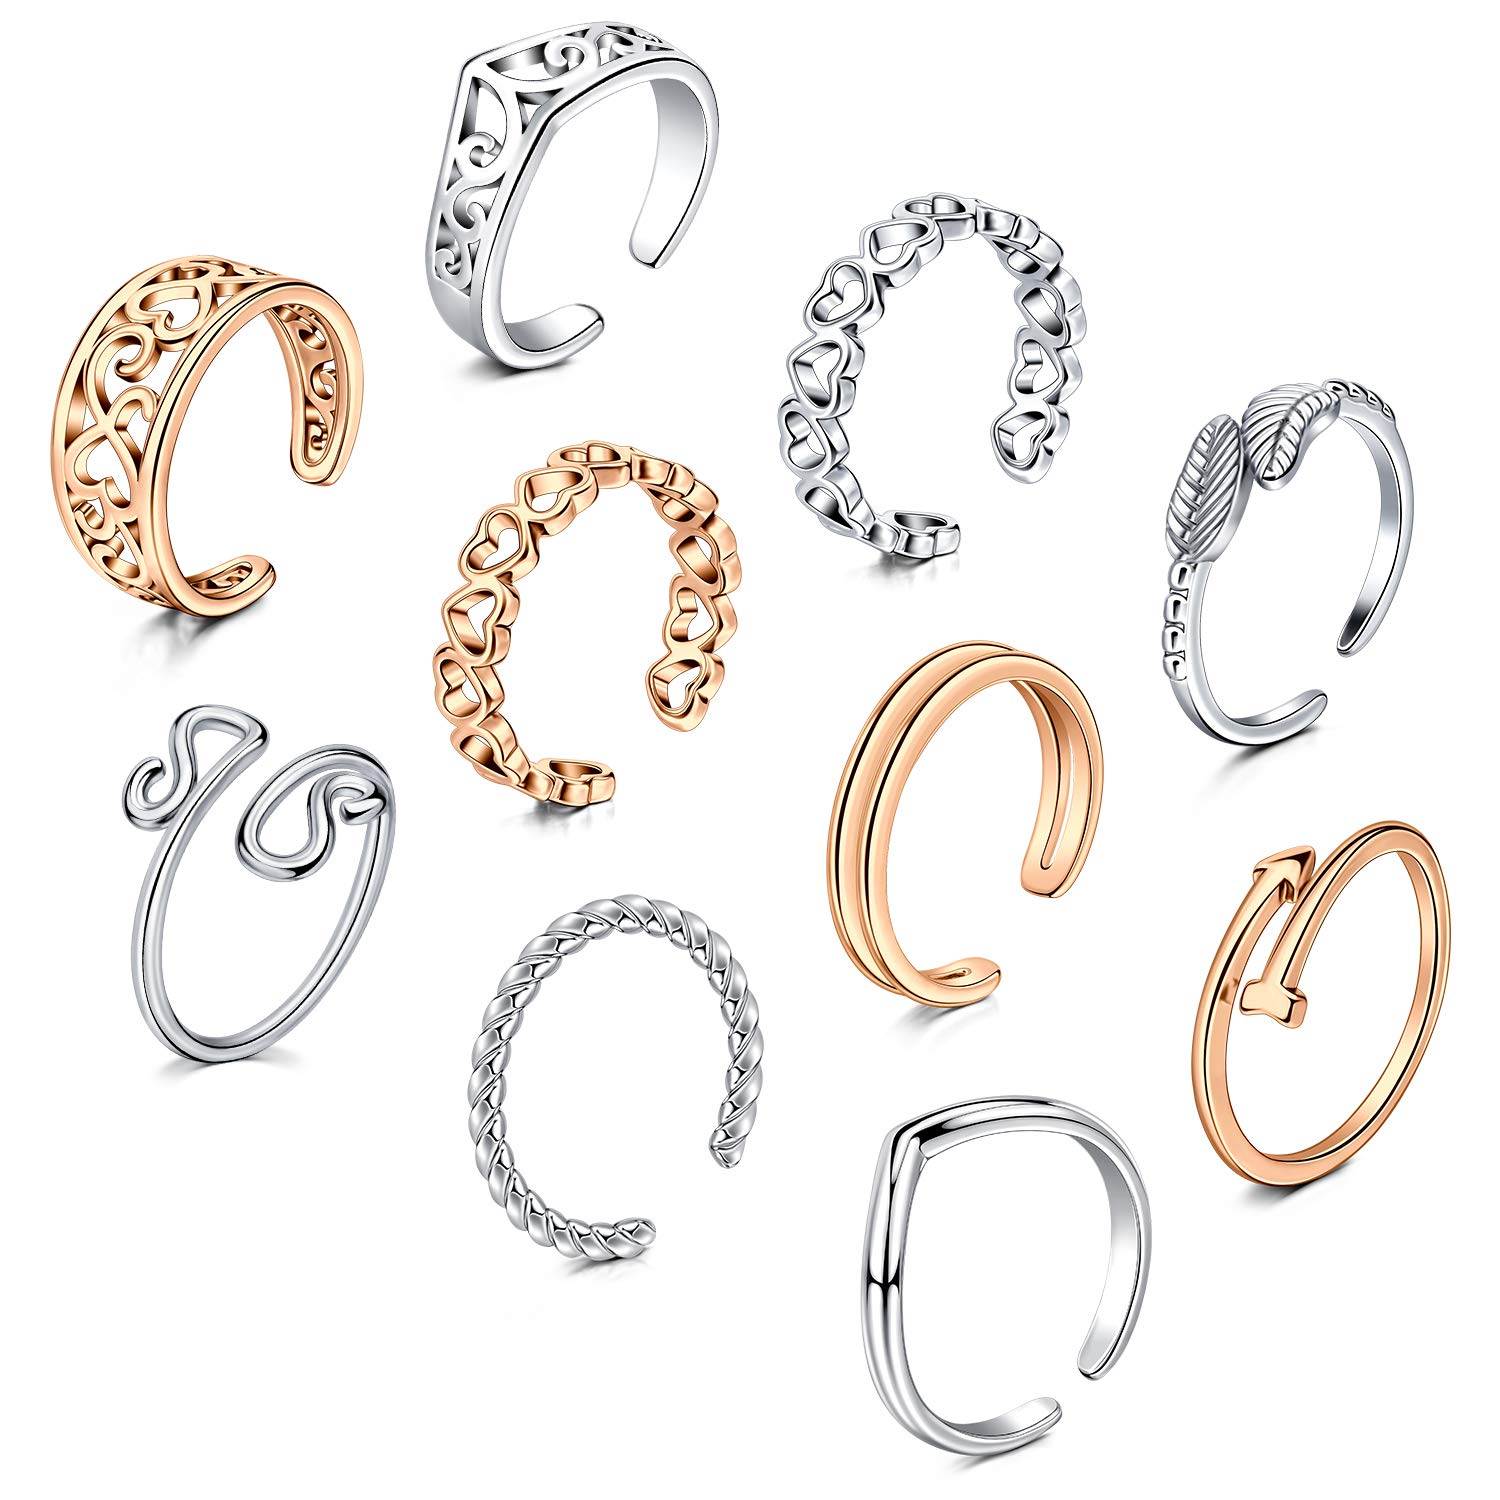 JFORYOU Open Toe Rings Set for Women 8-10 Pcs Hypoallergenic Adjustable Heart Leaf Arrow Style Fingers Joint Tail Ring Band Sandals Foot Jewelry